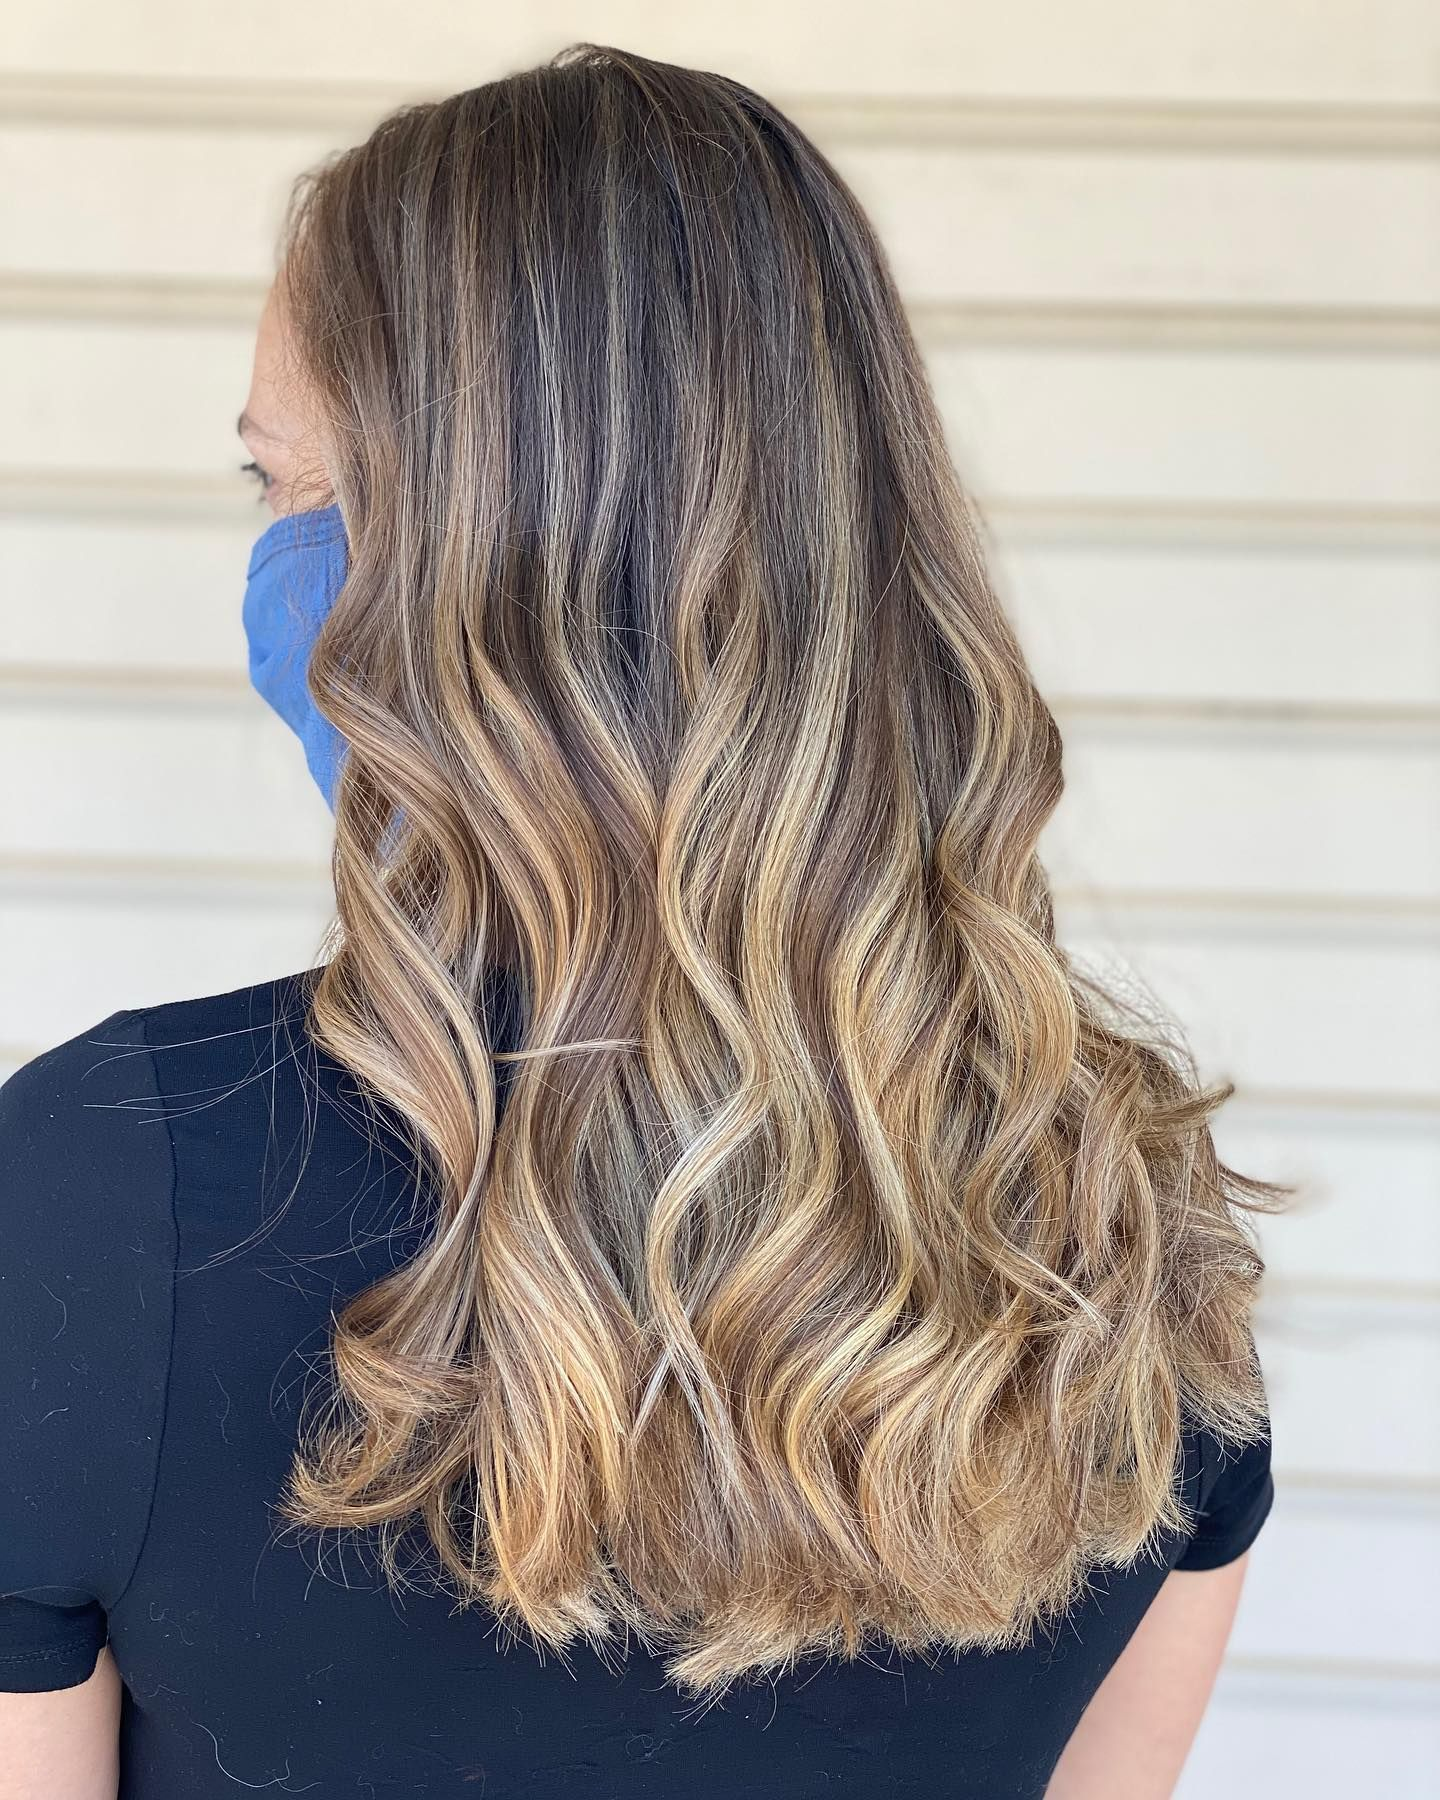 Balayaged color melt from brunette to honey blonde created by Stylist Megan. Call 410-795-9465 to reserve today! #blonde #blondehair #highlights #balayage #colormelt #ombre #summerhair #fallhair